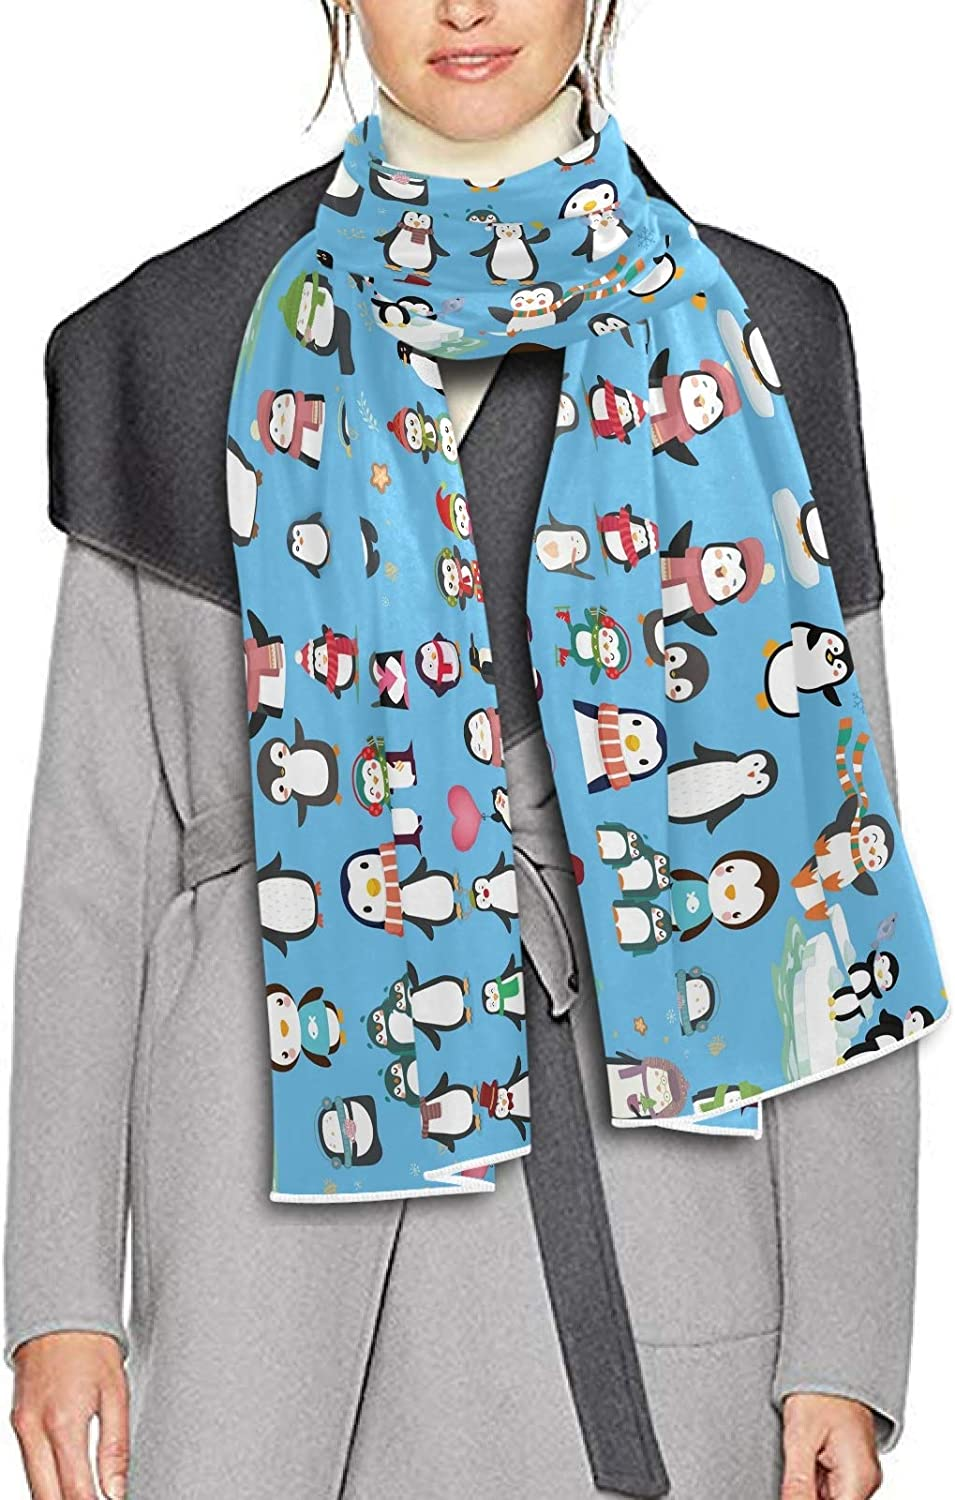 Scarf for Women and Men Penguin Colorful Shawl Wraps Blanket Scarf Soft warm Winter Oversized Scarves Lightweight